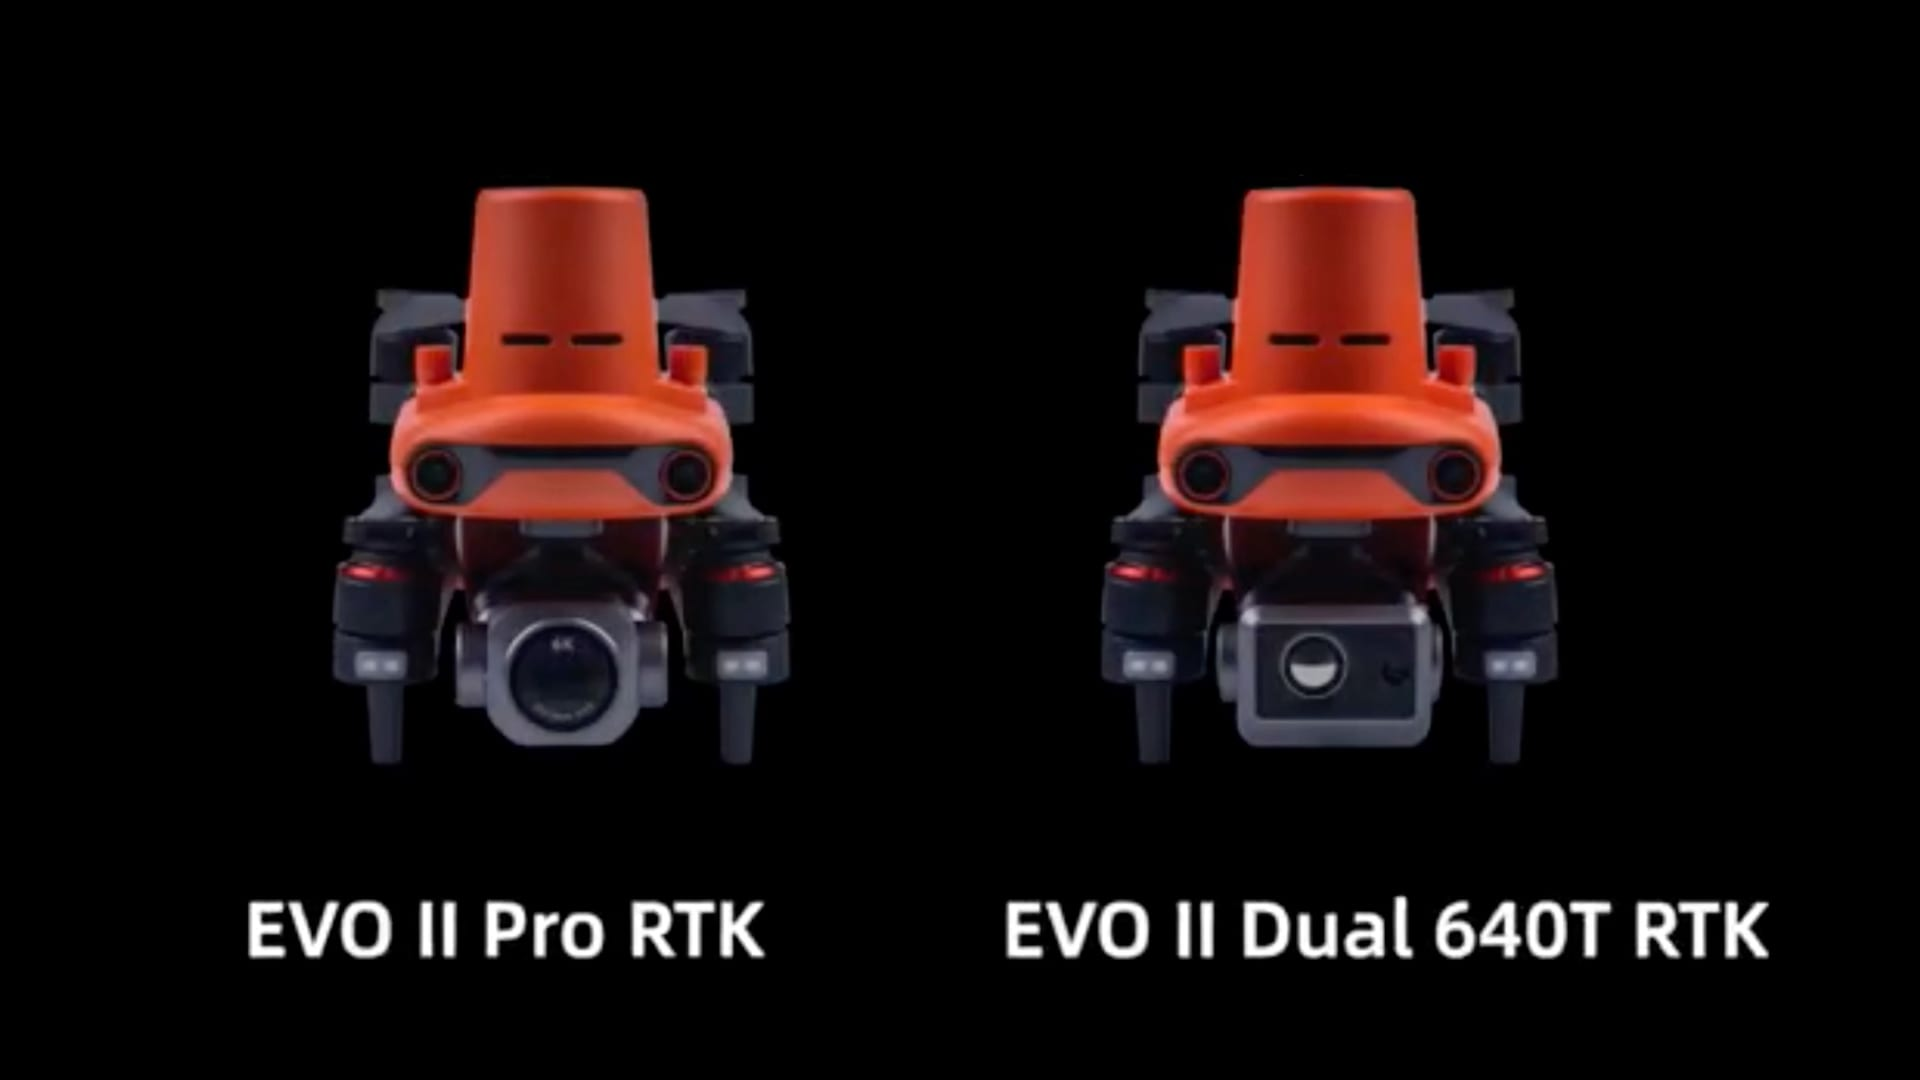 Autel Evo II Pro RTK and Autel EVO II Dual 640T RTK are on the way